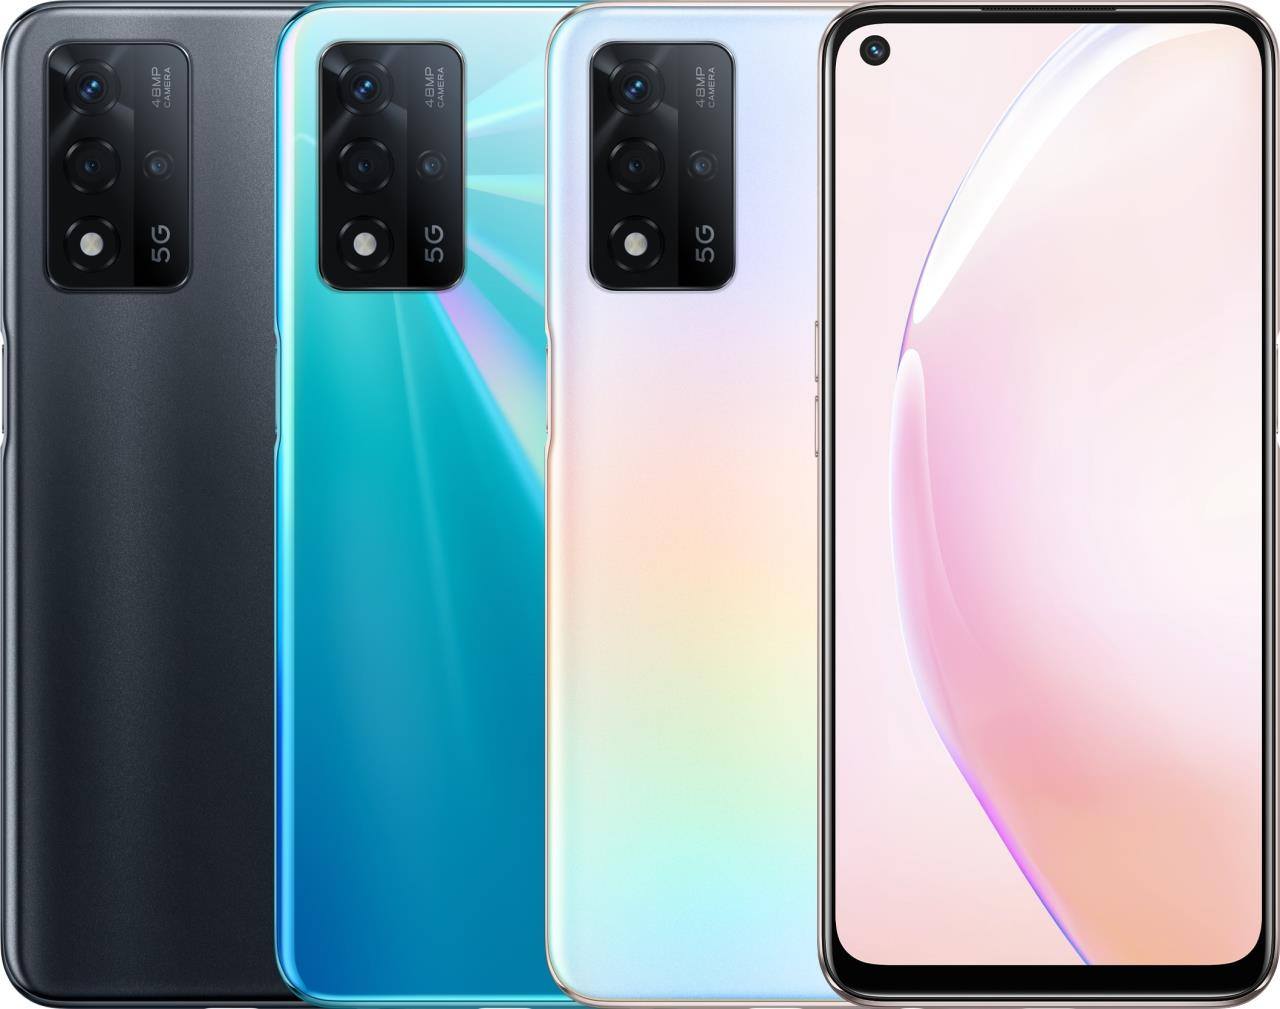 Oppo A93s 5G comes with 90Hz screen, 48MP sensor and Android 11